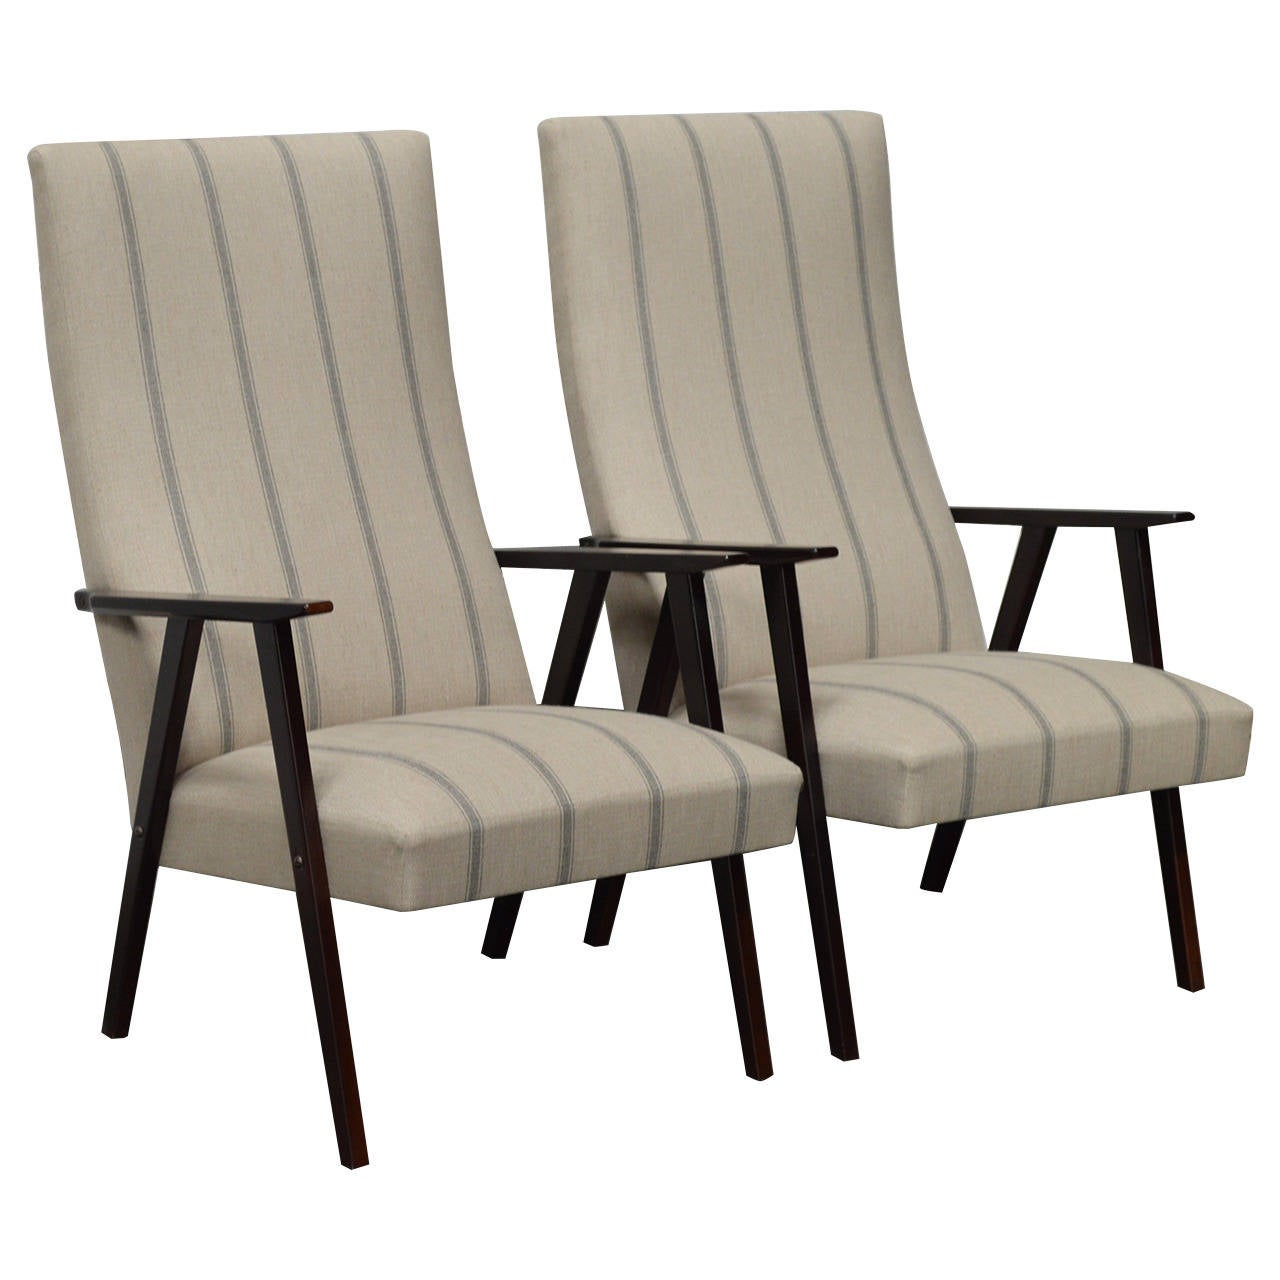 Swedish Mid Century Furniture Pair Of Swedish Mid Century Modern High Back Lounge Armchairs